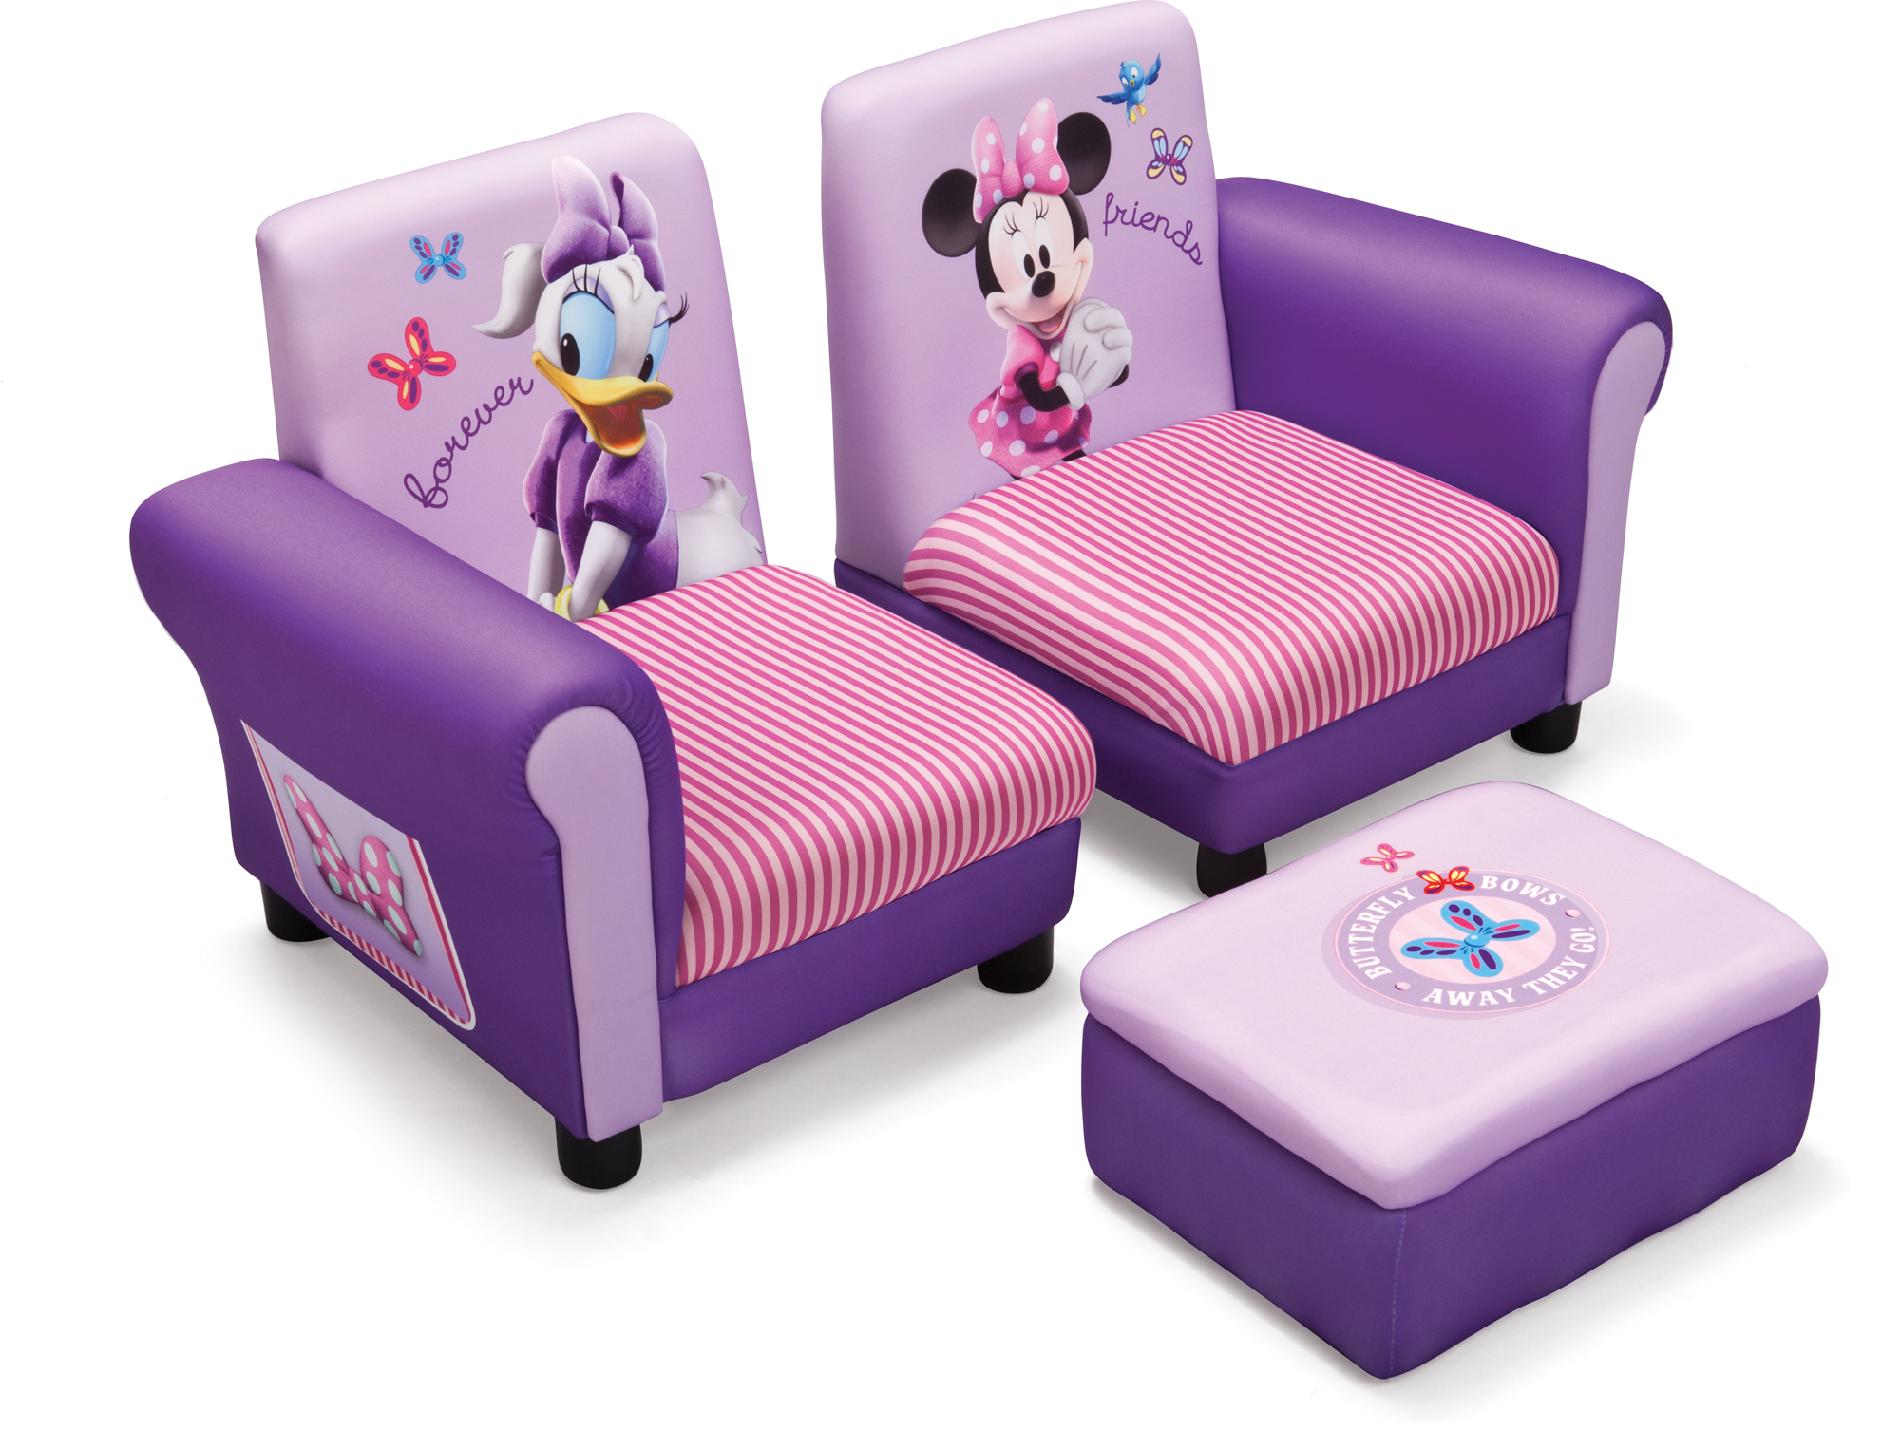 minnie mouse chair target how to make doll chairs furniture totally kids bedrooms